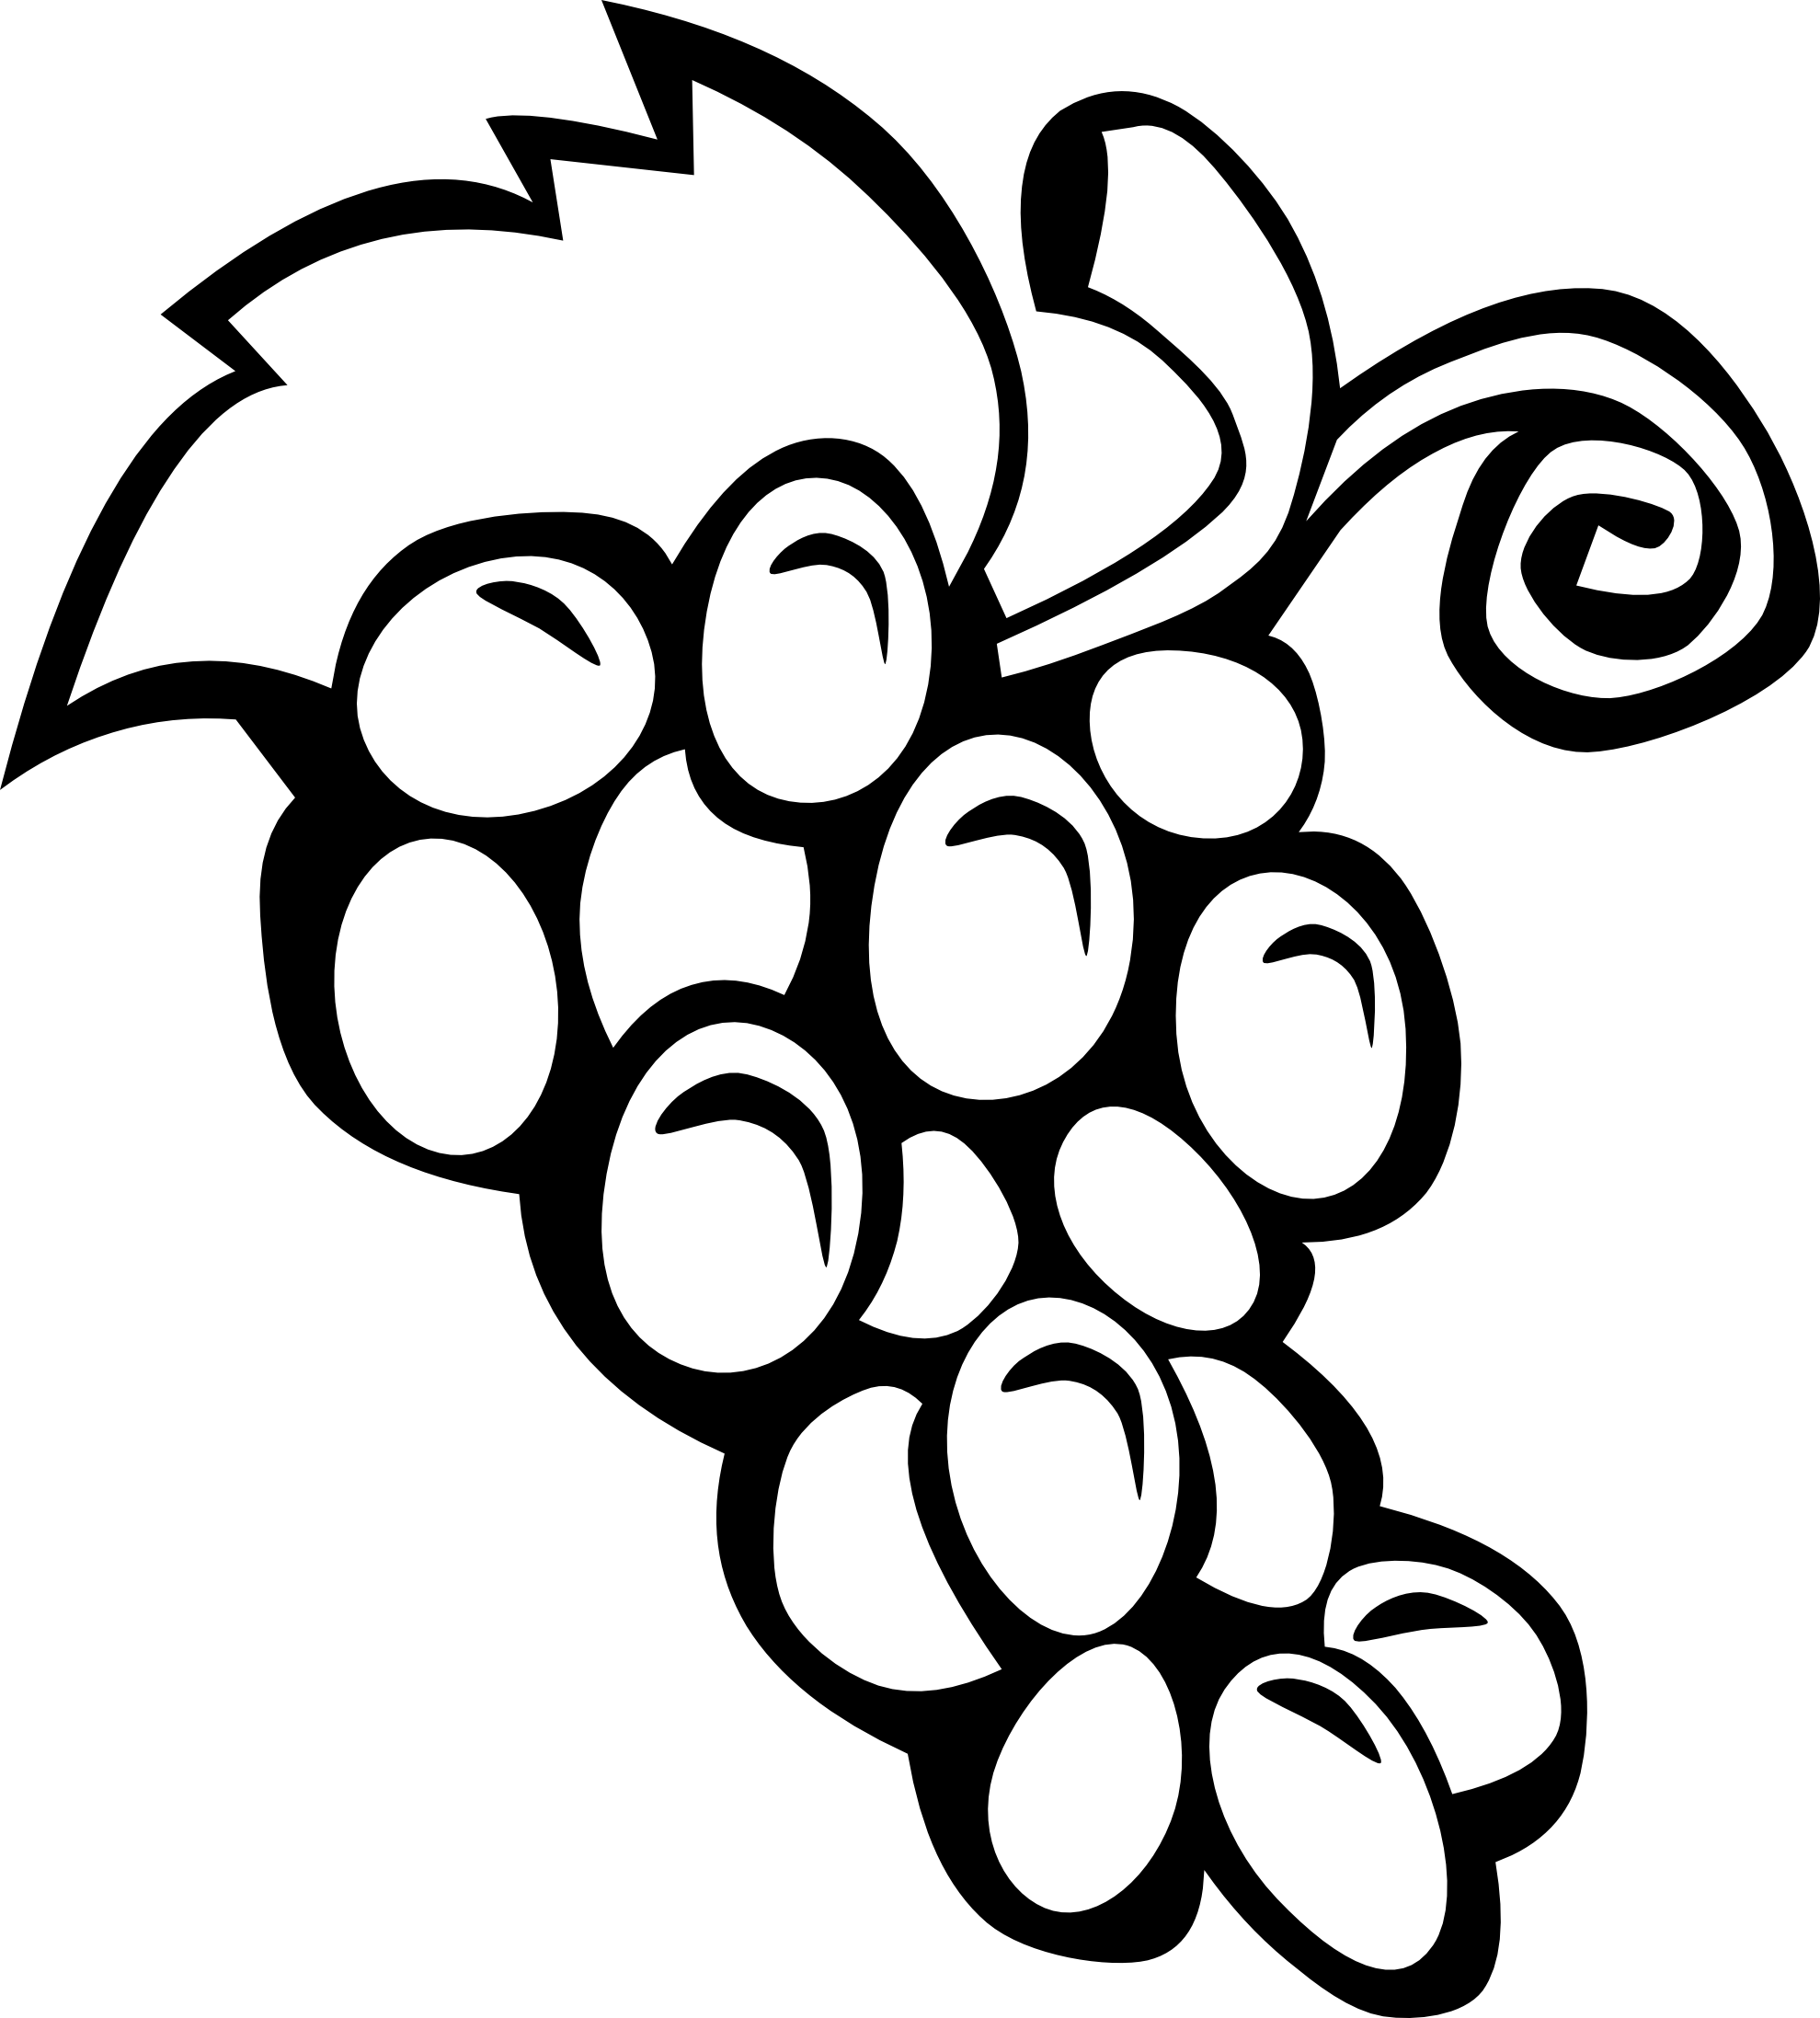 PNG Vegetables And Fruits Black And White - 54837